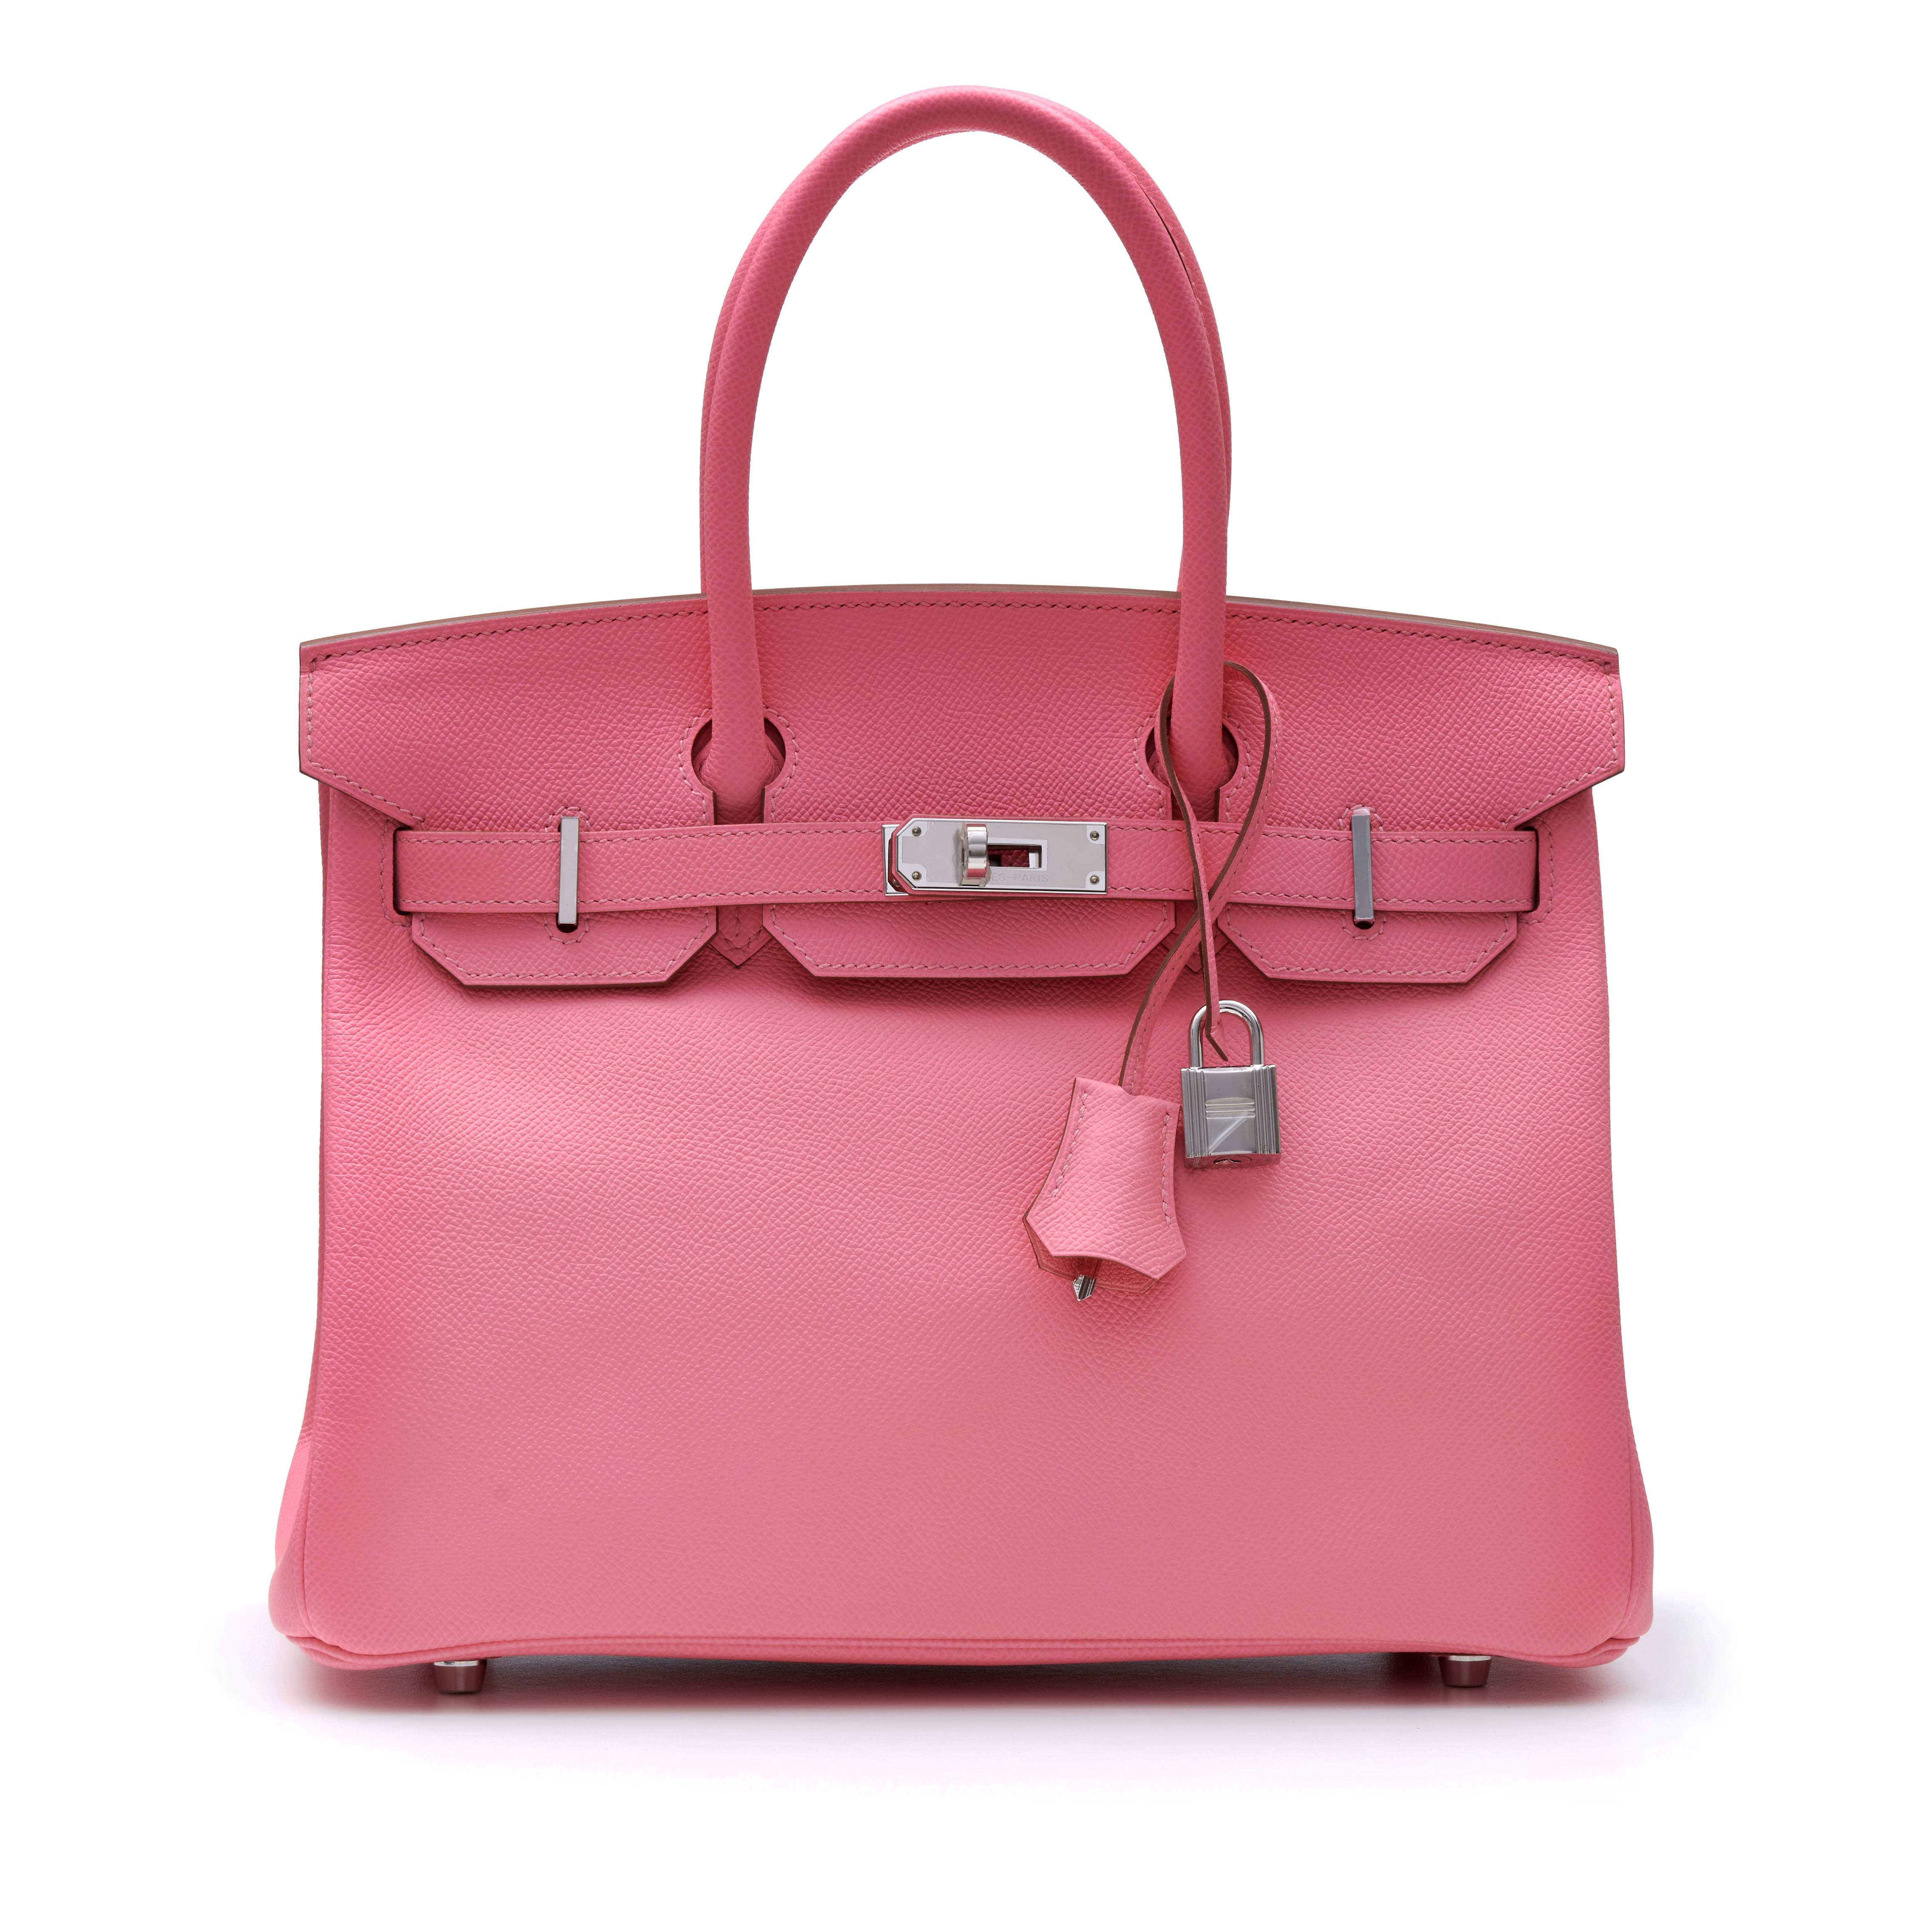 View full screen - View 1 of Lot 302. Rose Confetti Birkin 30cm in Epsom Leather with Palladium Hardware, 2020.